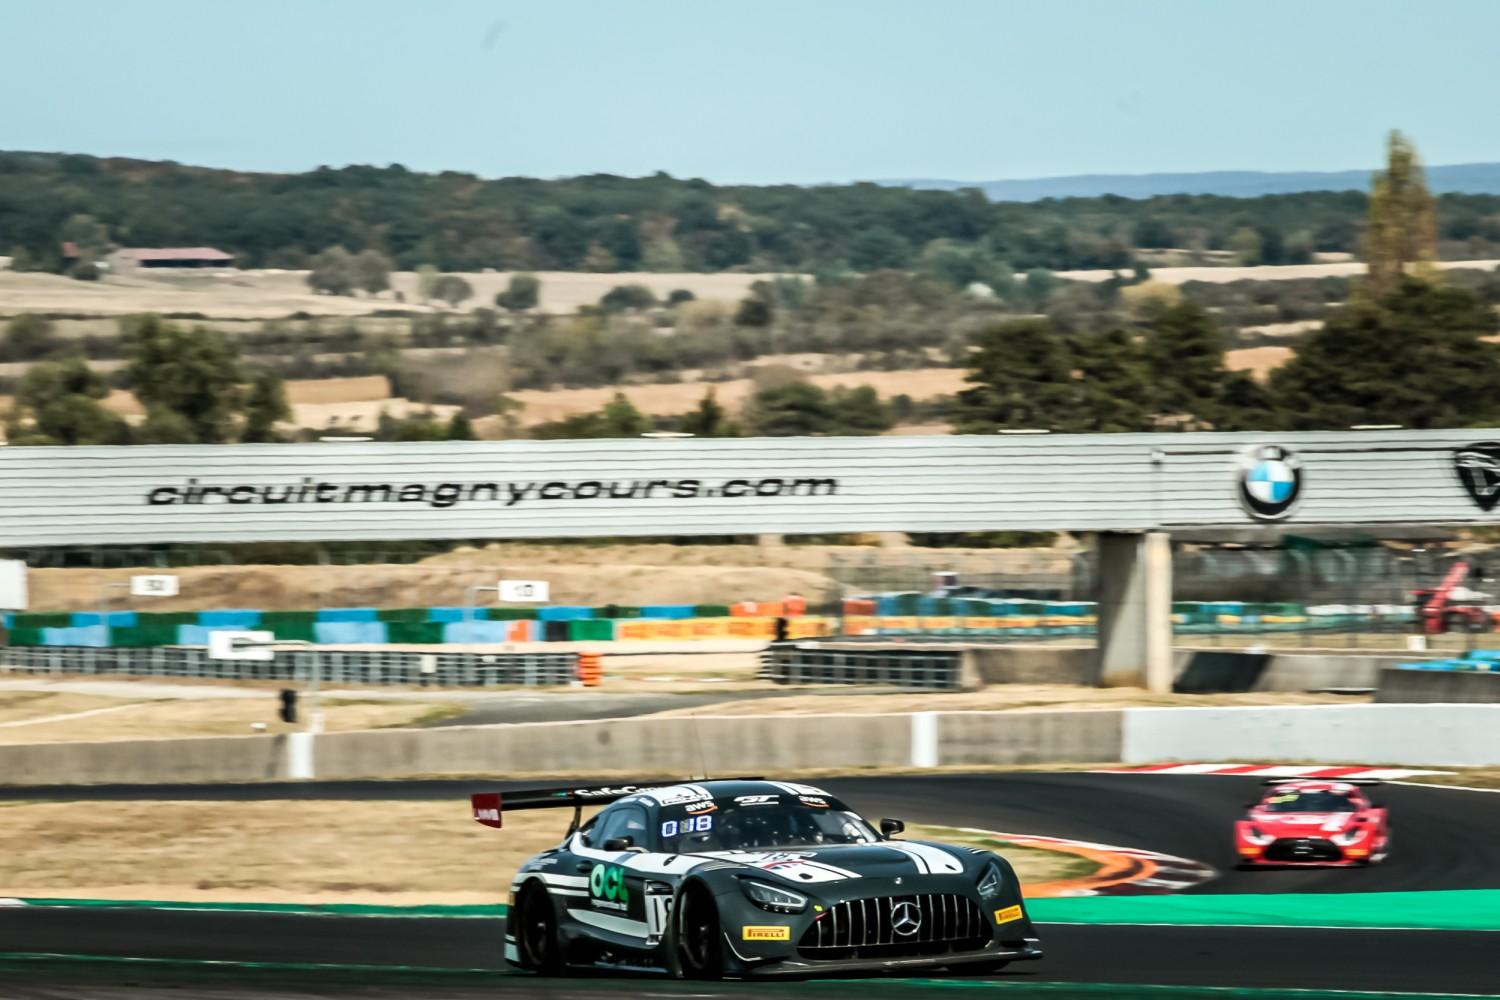 #18 ERC Sport GBR Mercedes-AMG GT3 Pro-Am Cup Lee Mowle GBR Phil Keen GBR, Race 2